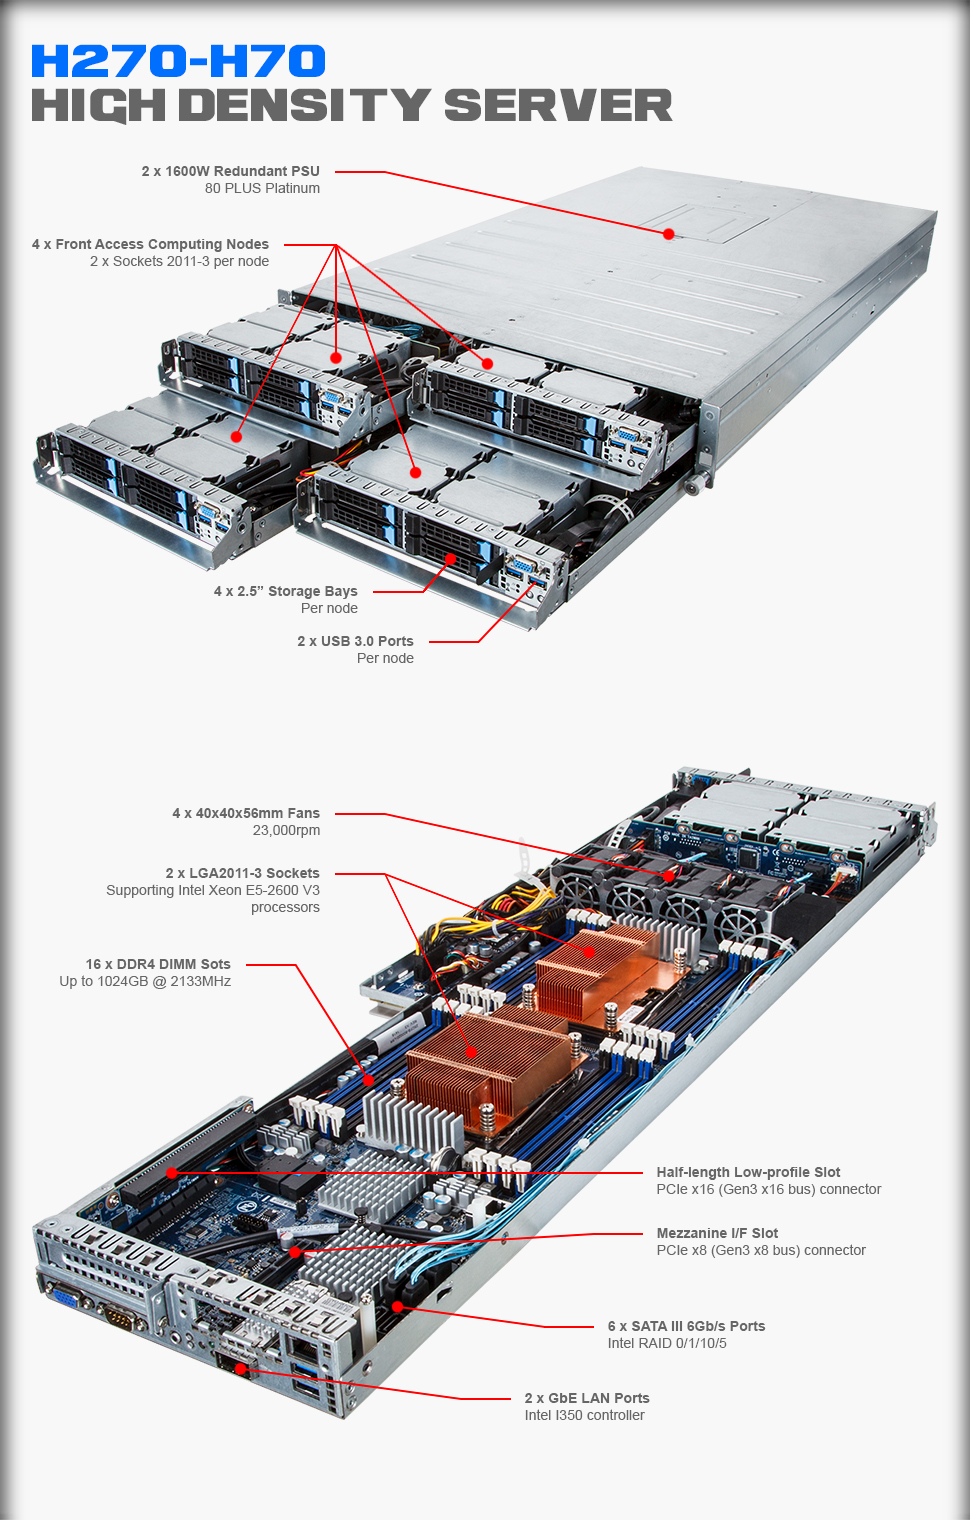 H270-H70 Overview